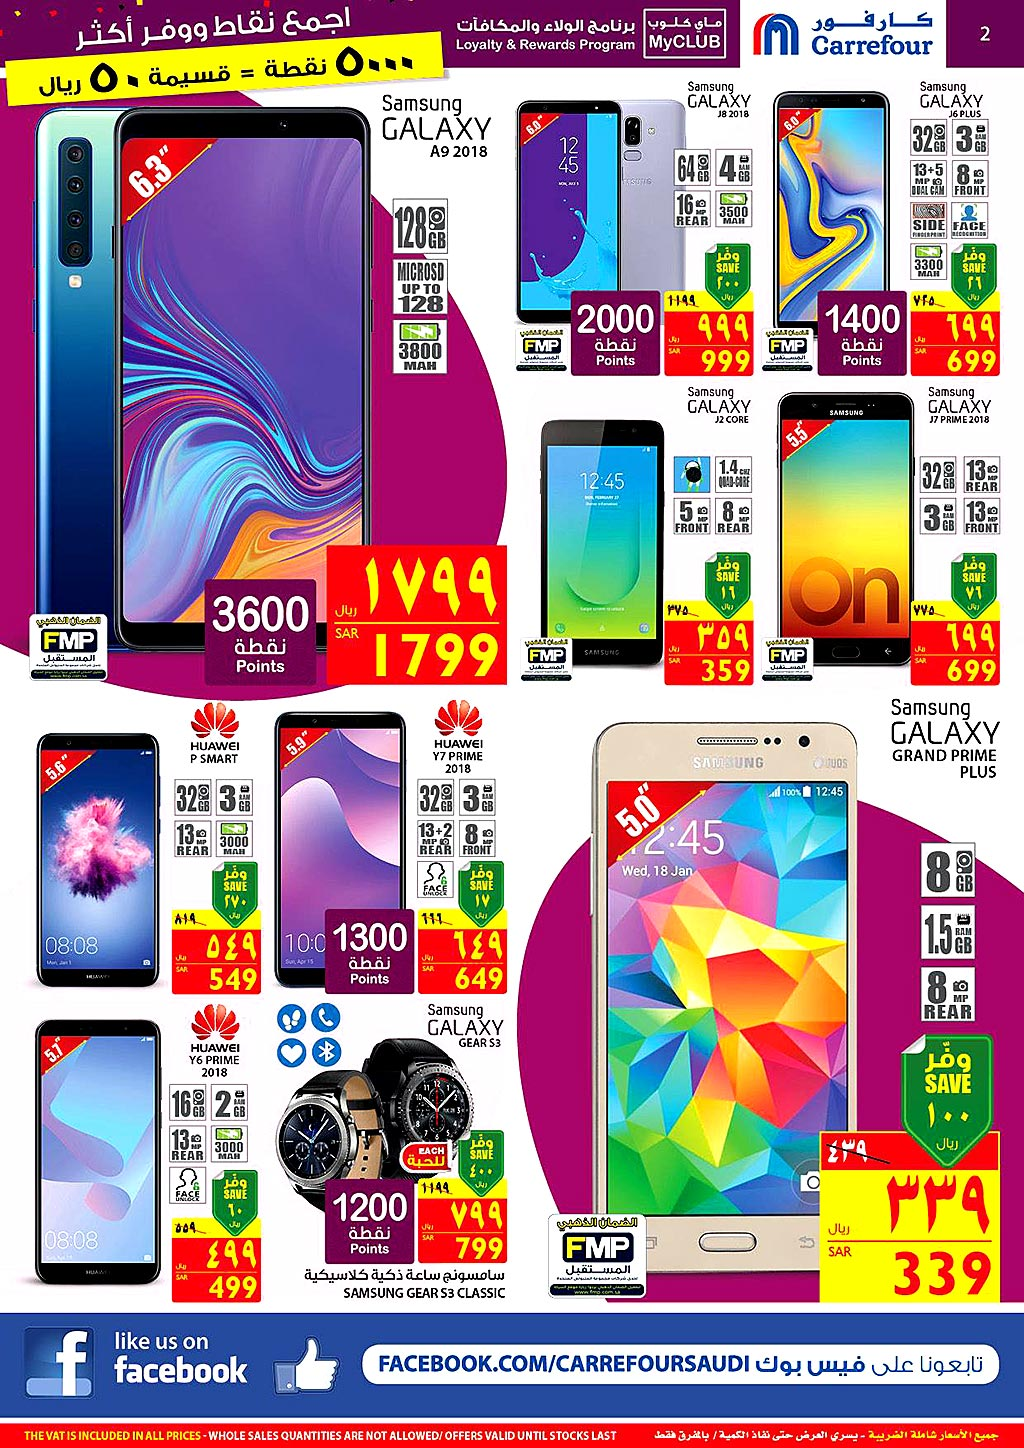 45d80add4 carrefour offers from 2jan to 8jan 2019 page number 2 عروض كارفور-السعودية  من 2